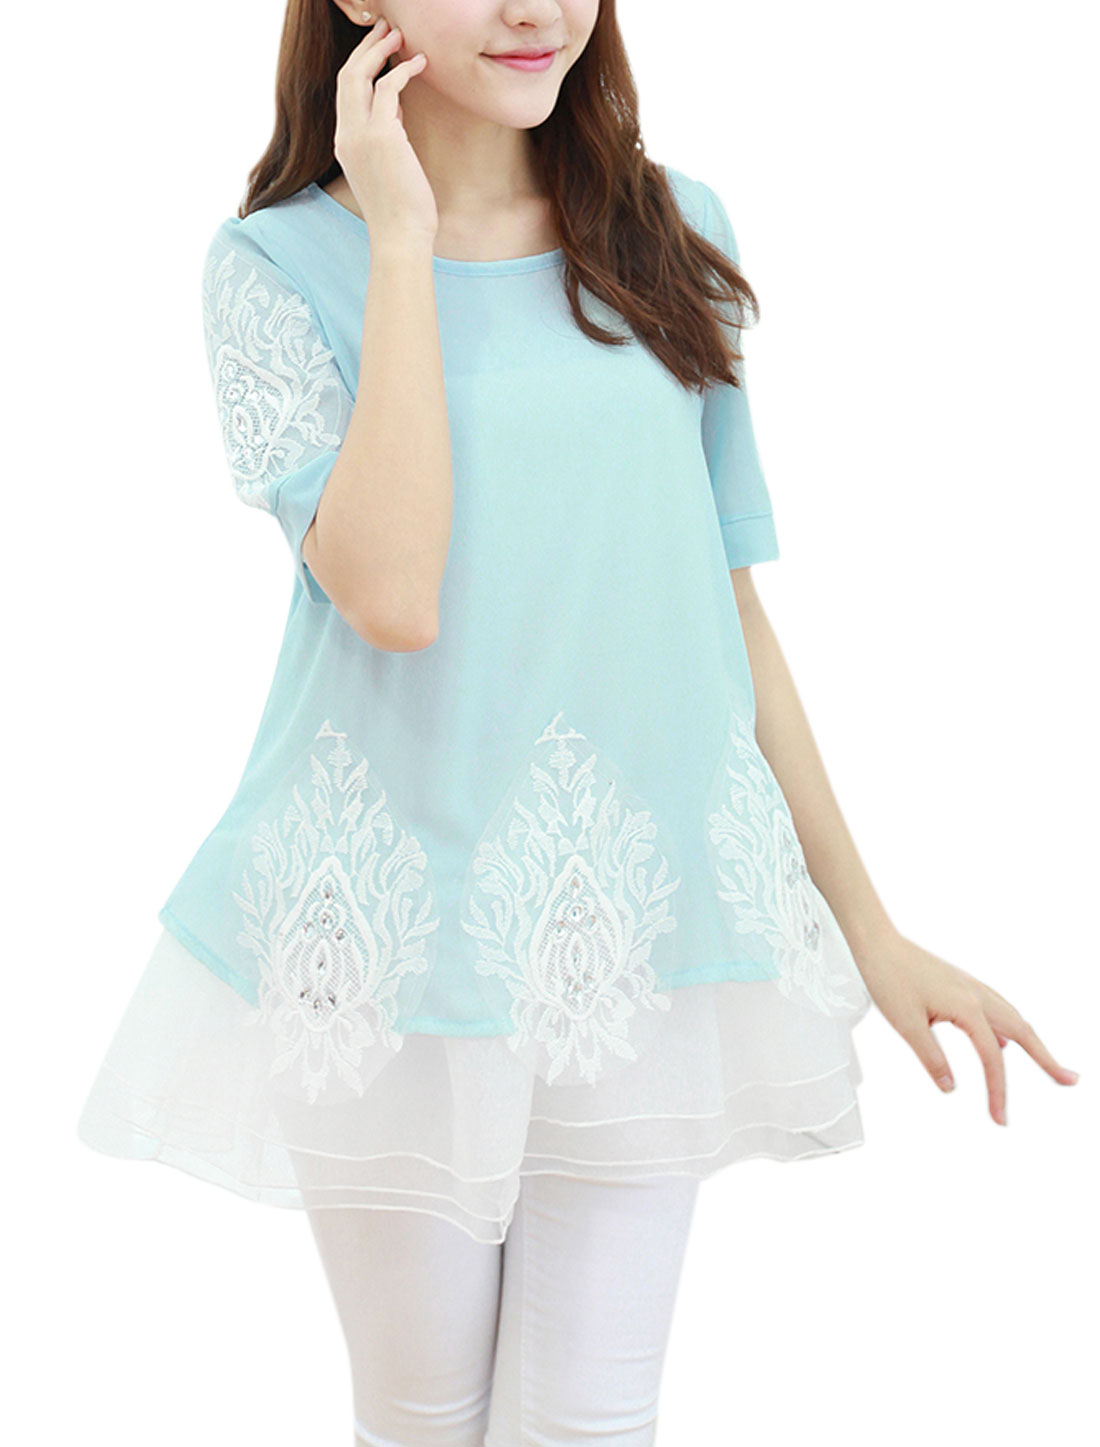 Lady Organza Panel Novelty Embroidery Applique Sweet Chiffon Top Baby Blue M